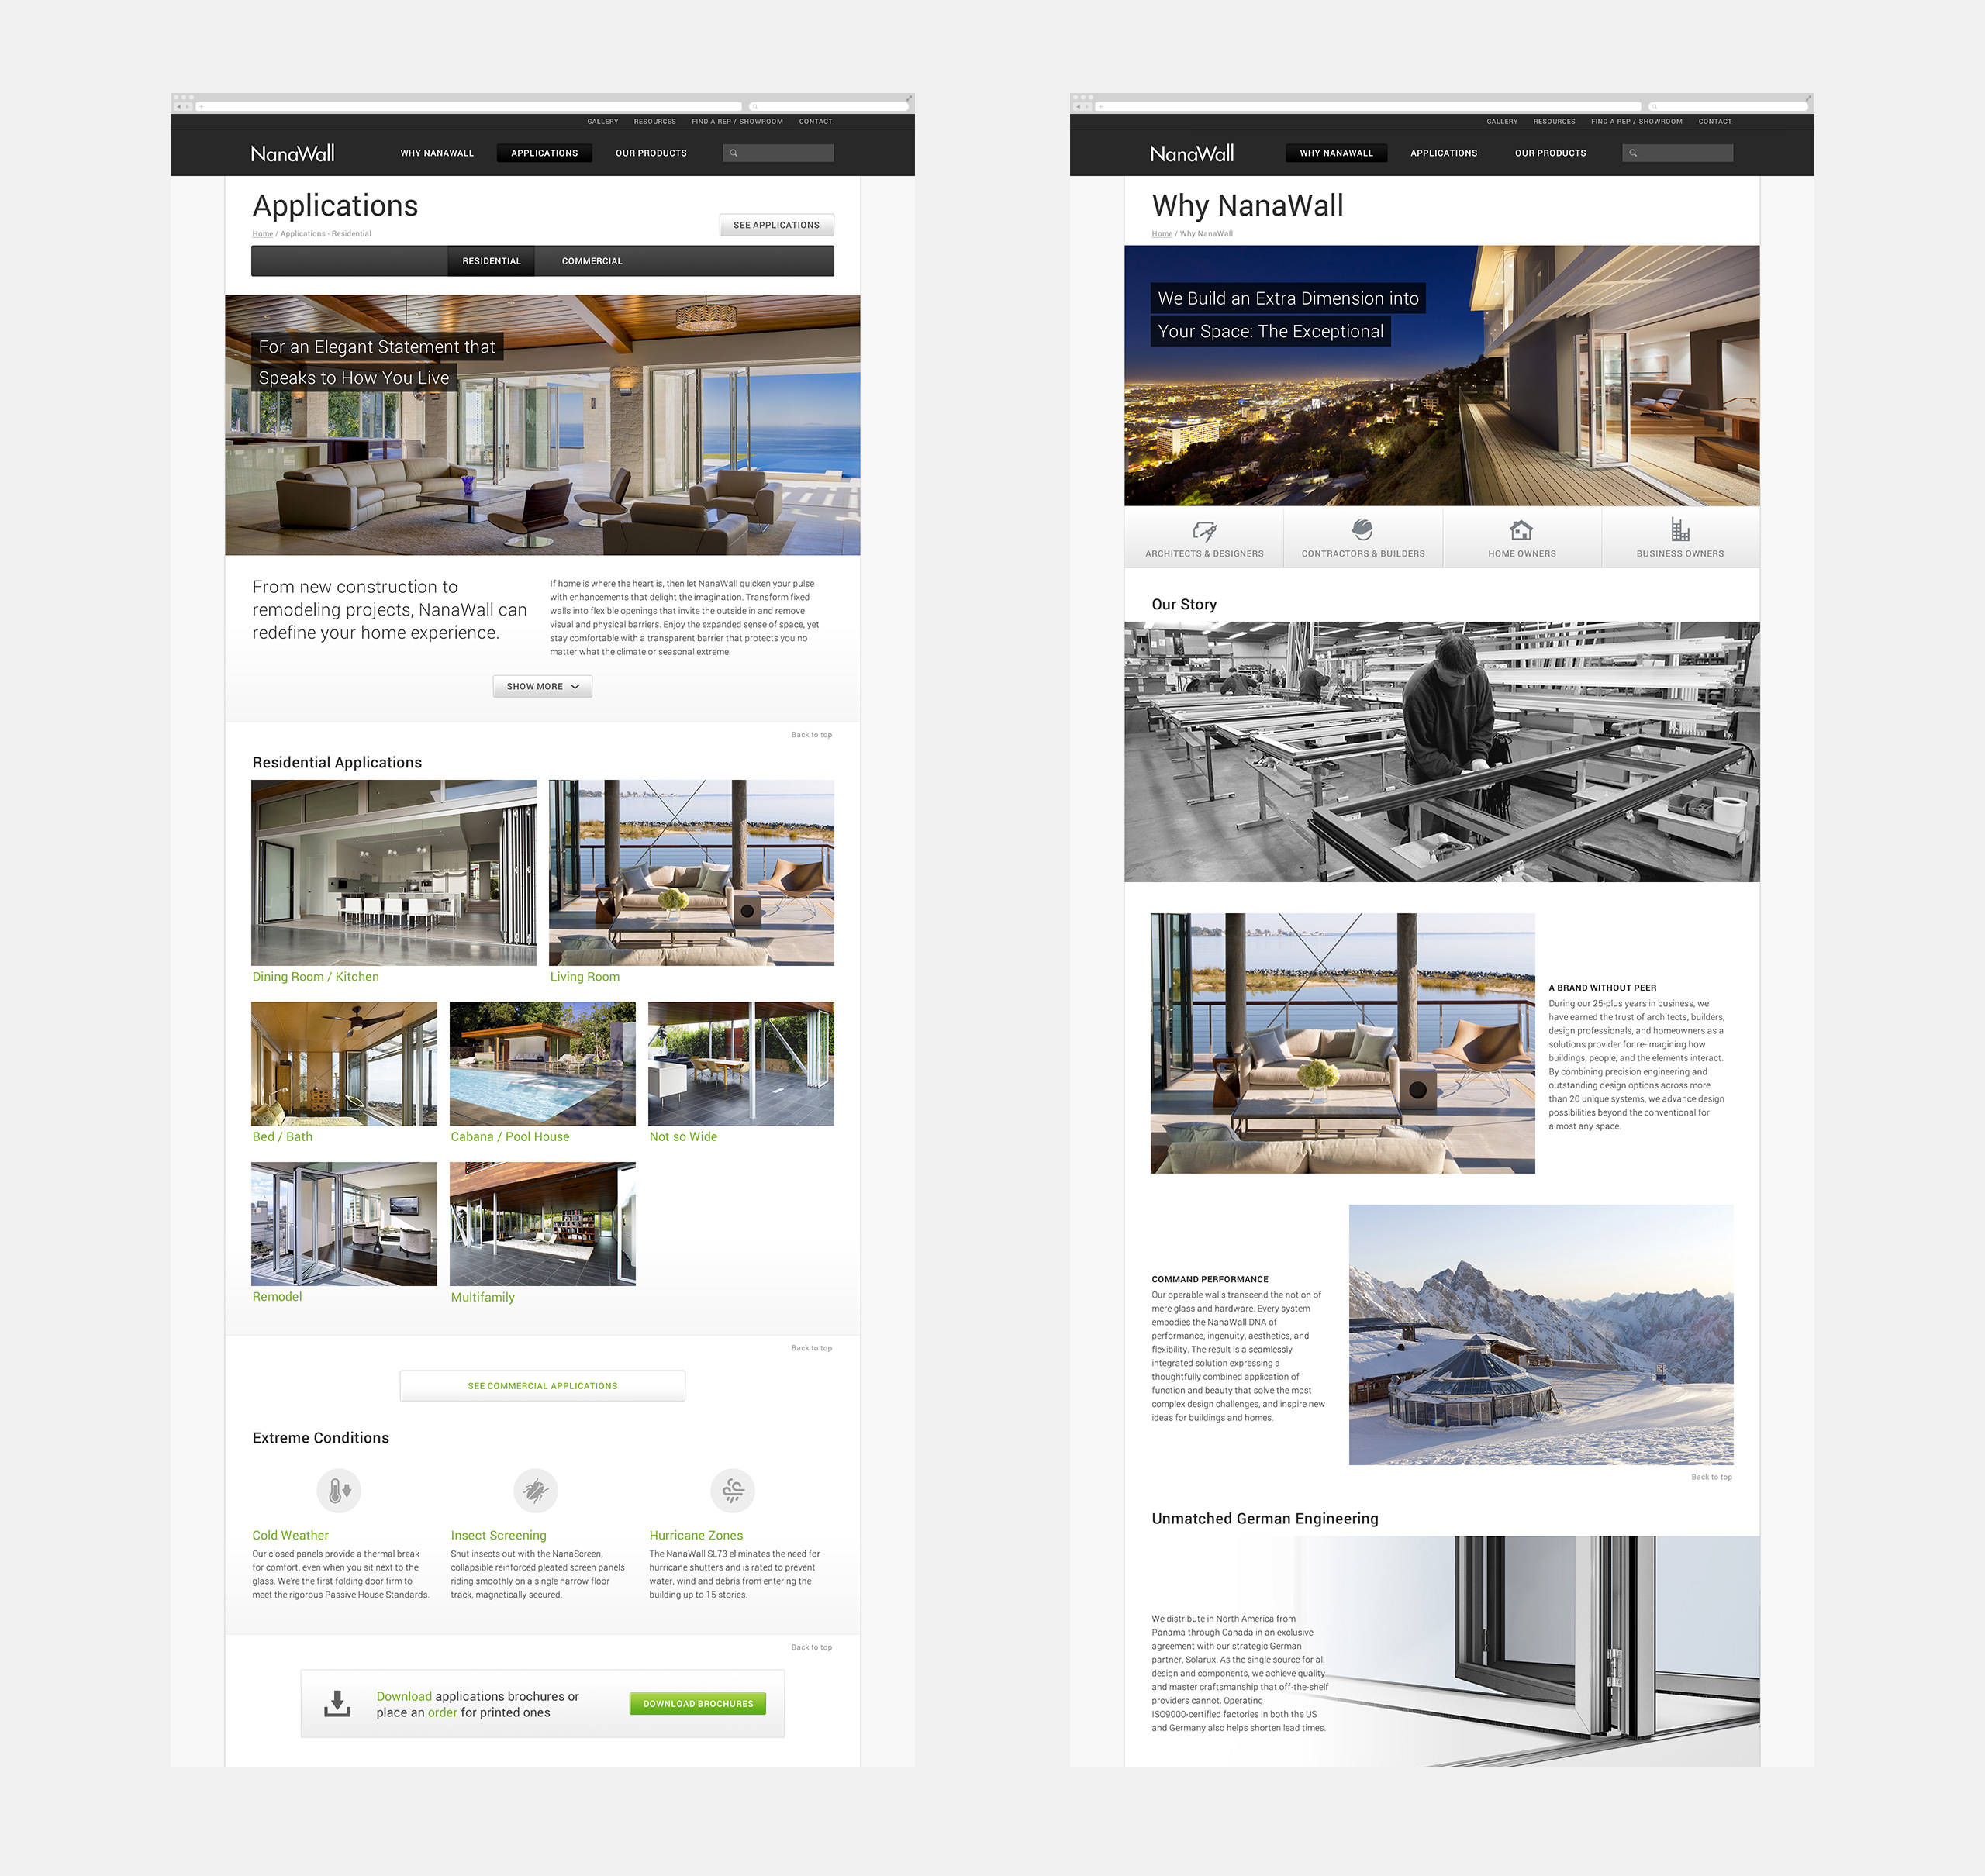 NanaWall Website Sections - Applications Page and Why NanaWall Page